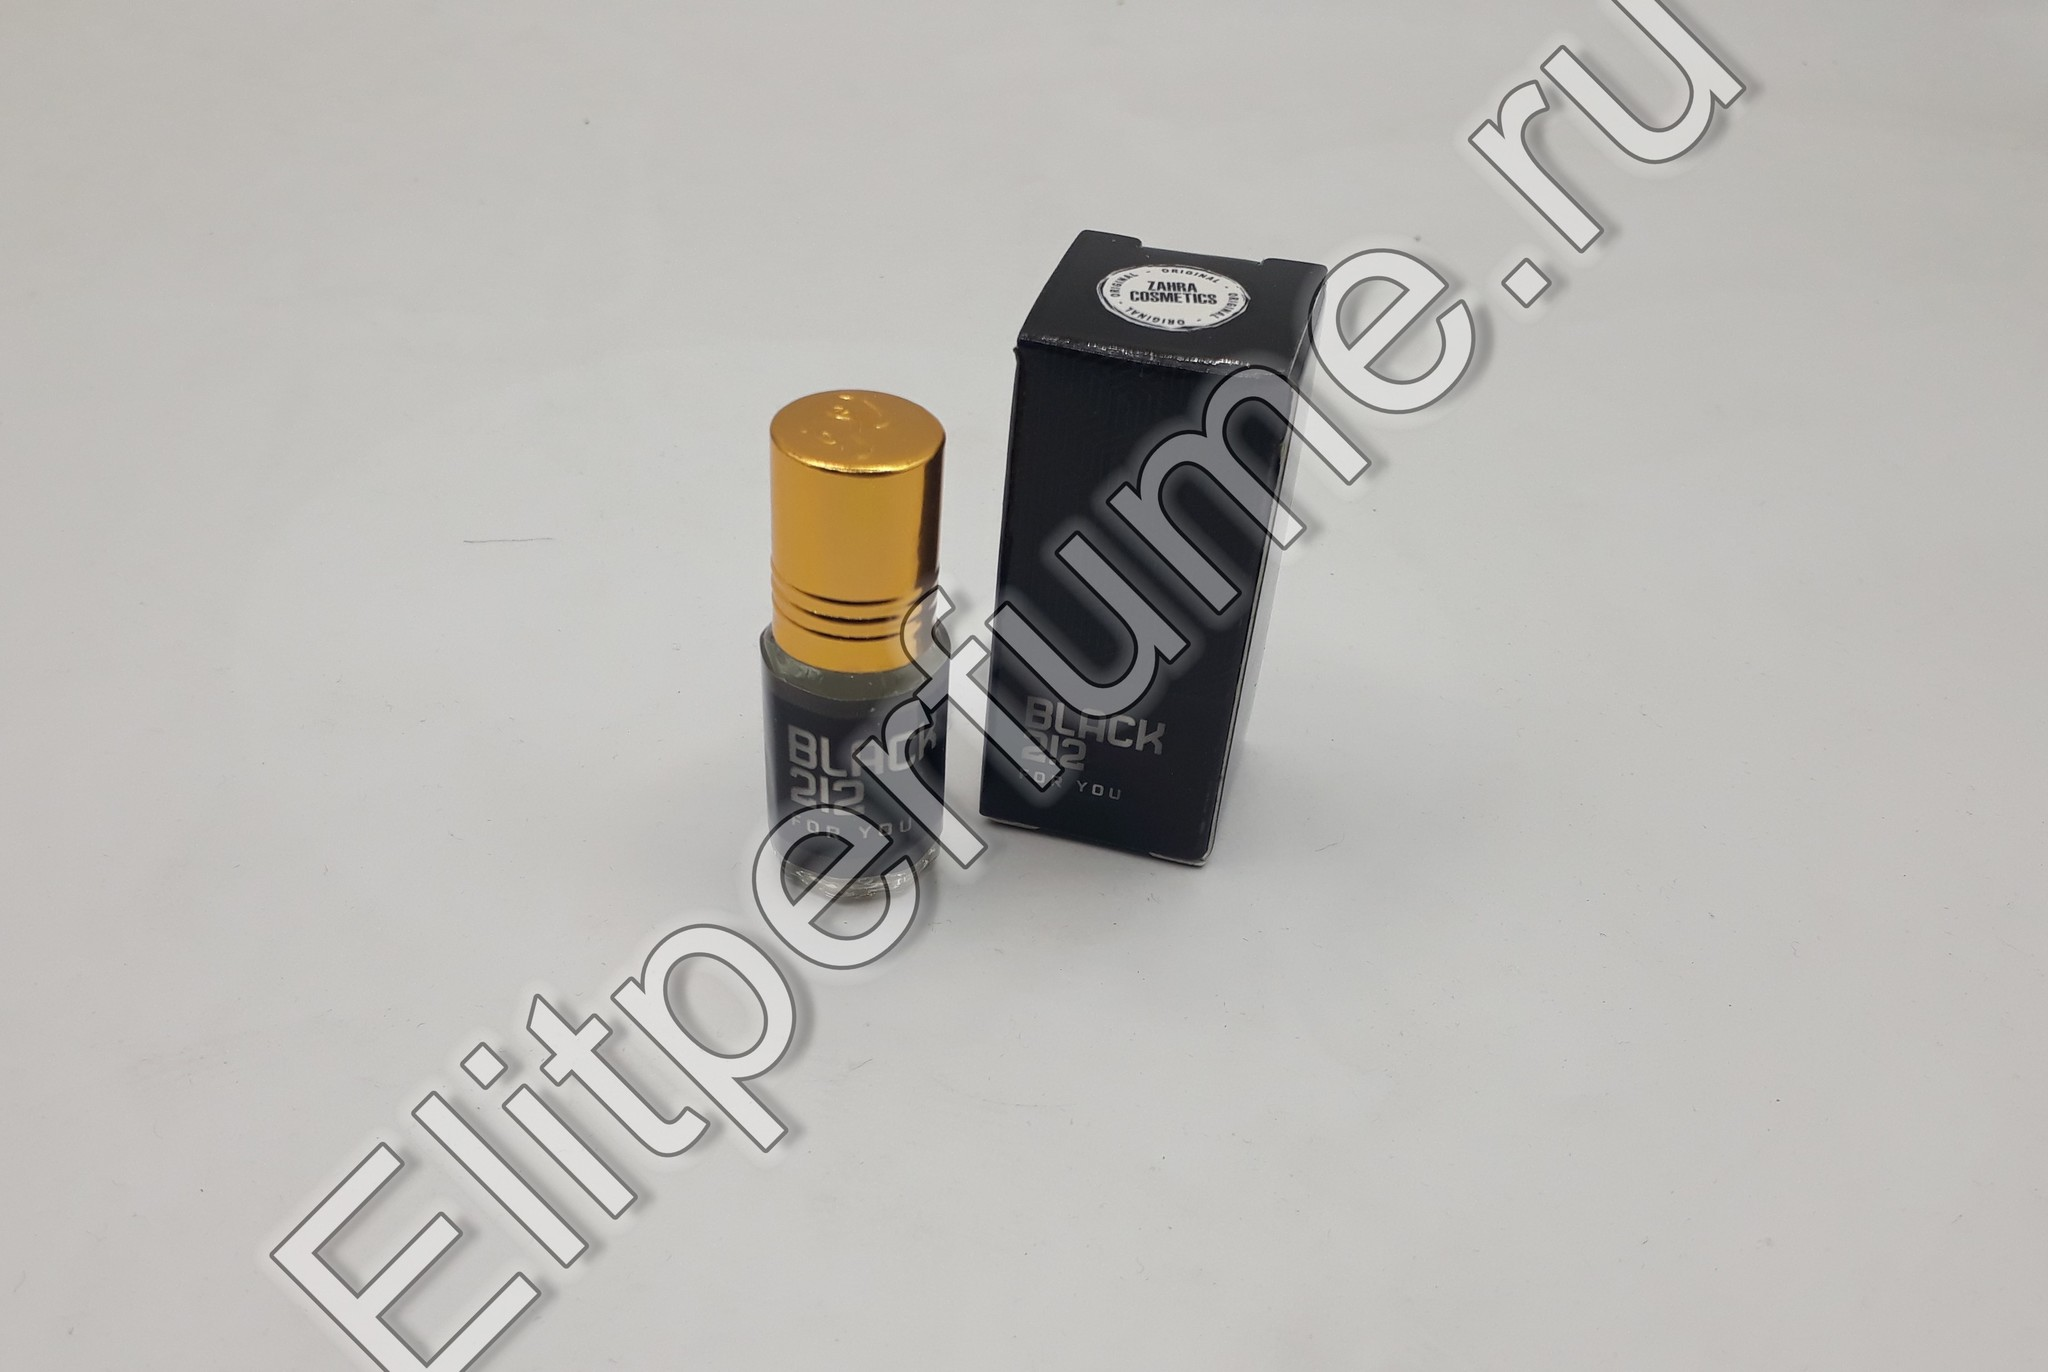 For You Black 2i2  3 мл арабские масляные духи от Захра Zahra Perfumes